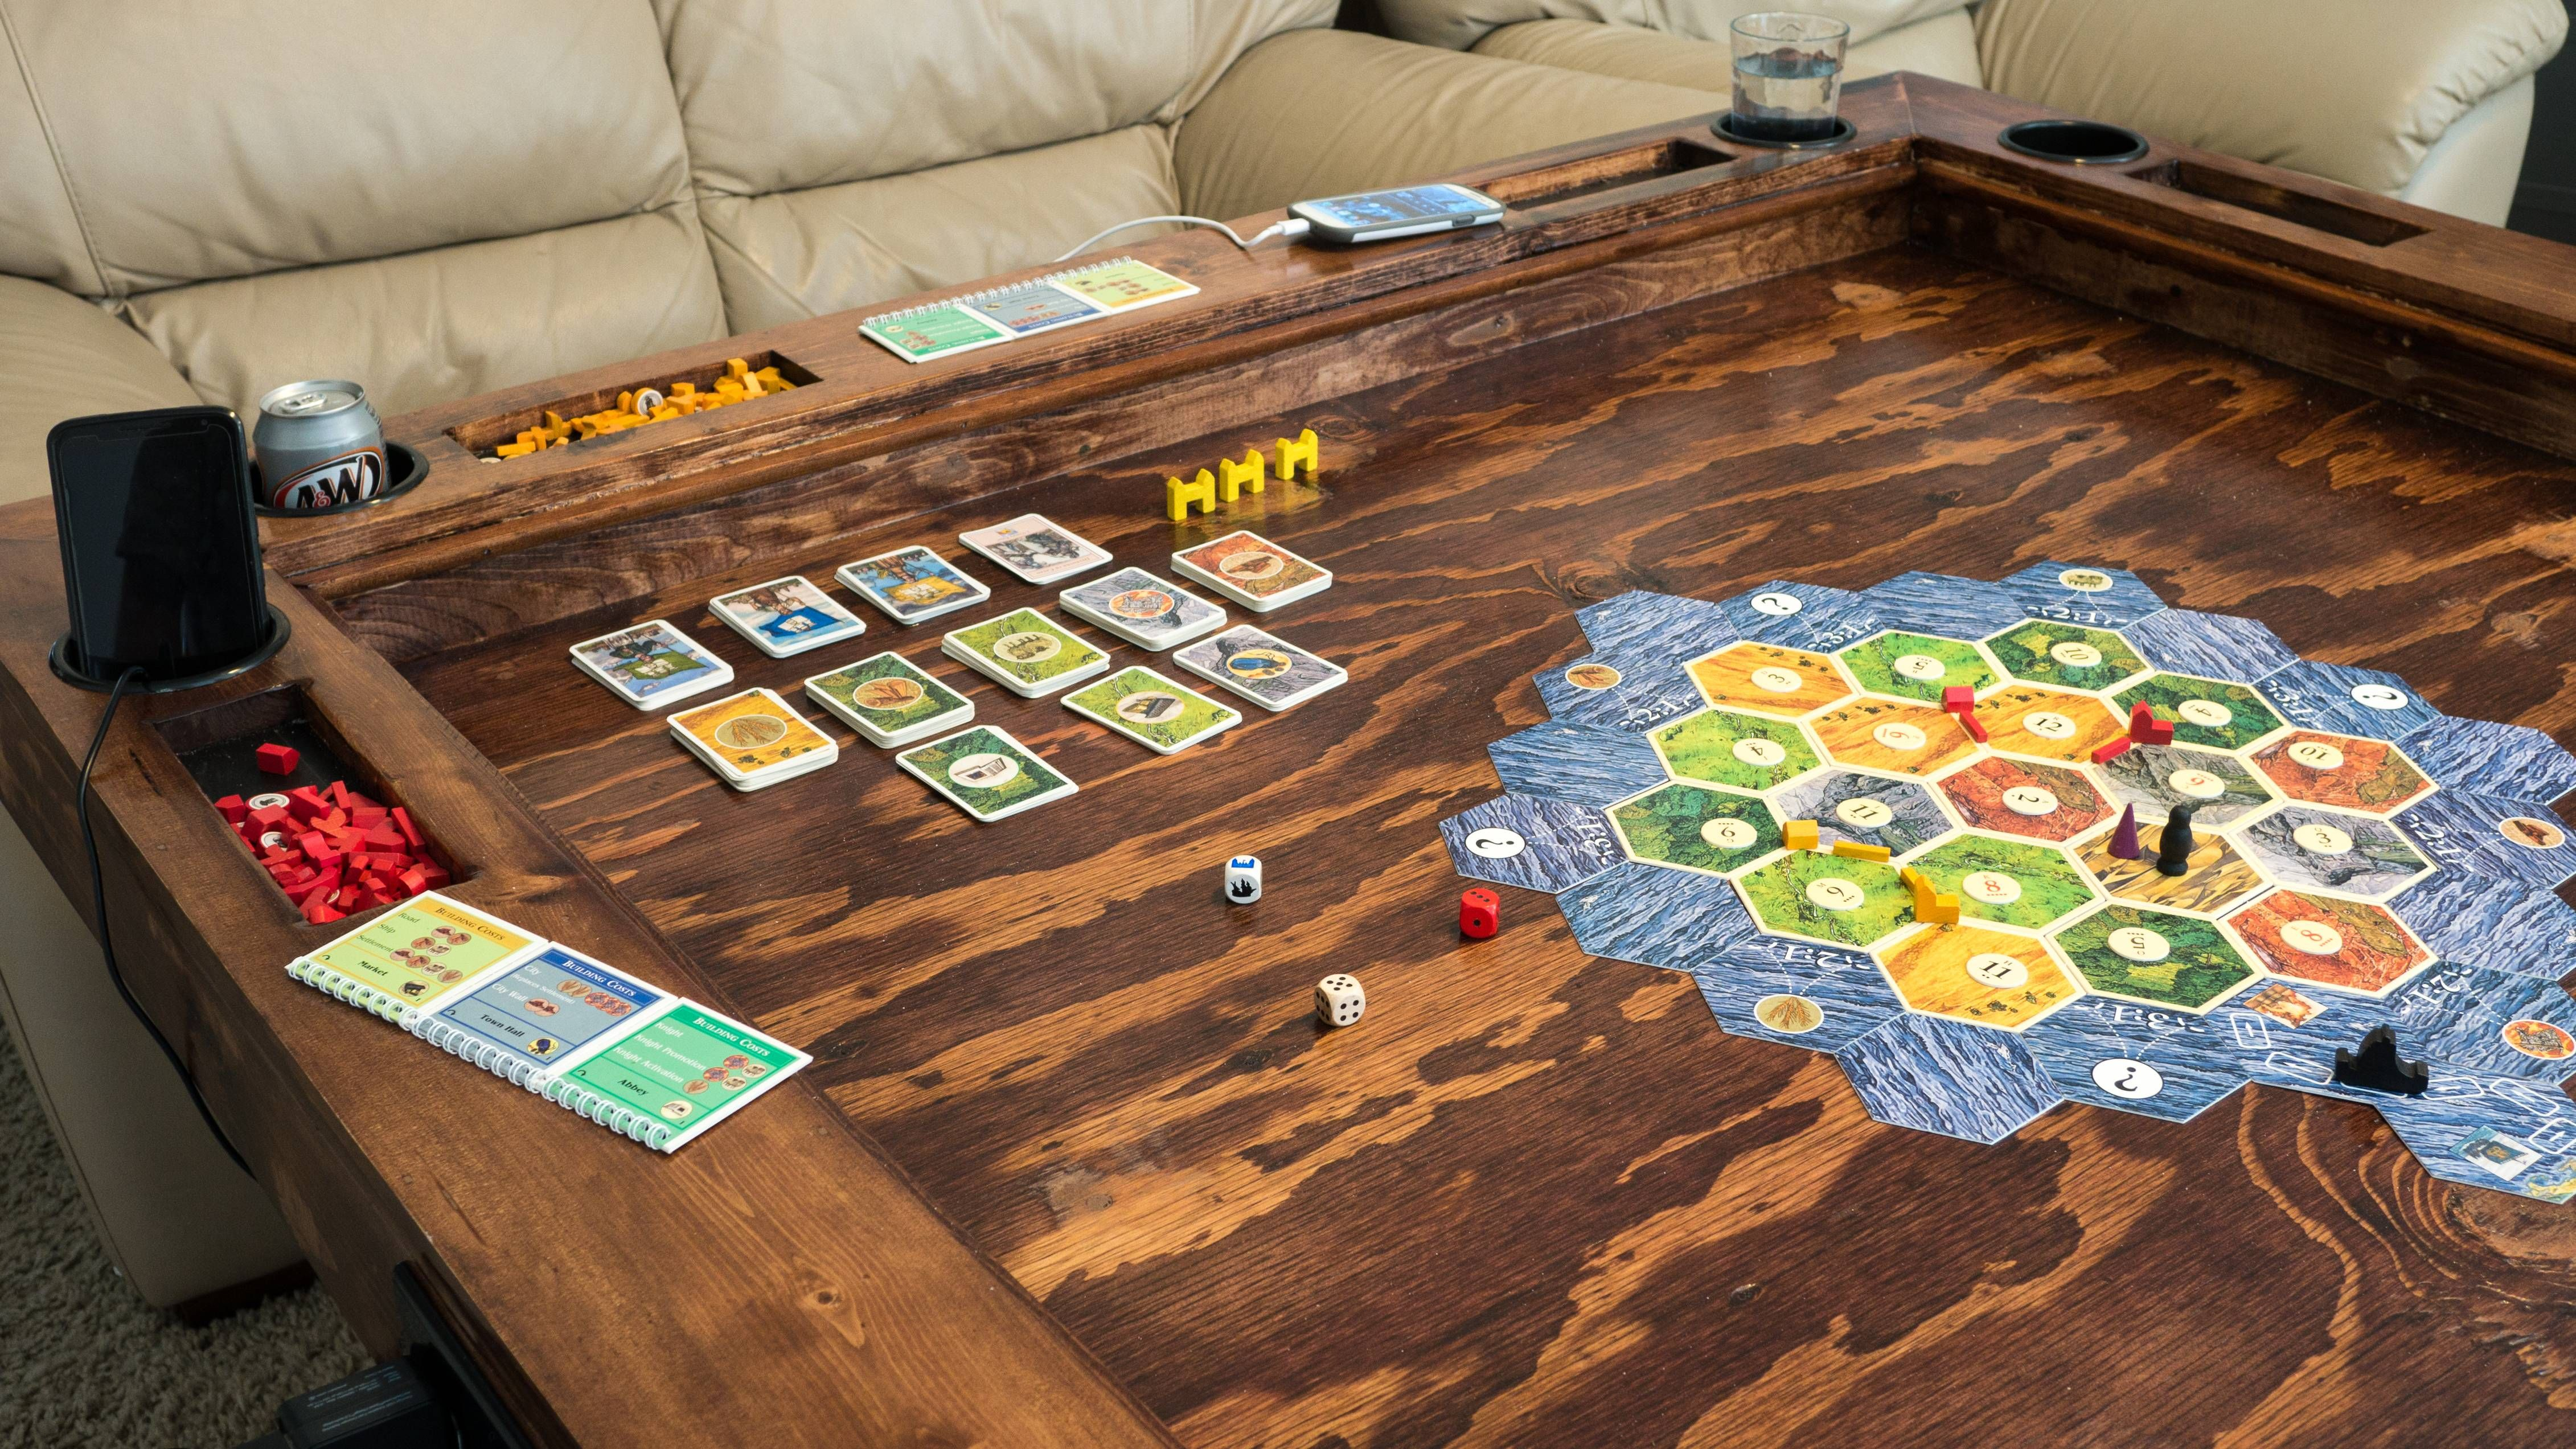 My First Woodworking Project 5 x5 Gaming Table